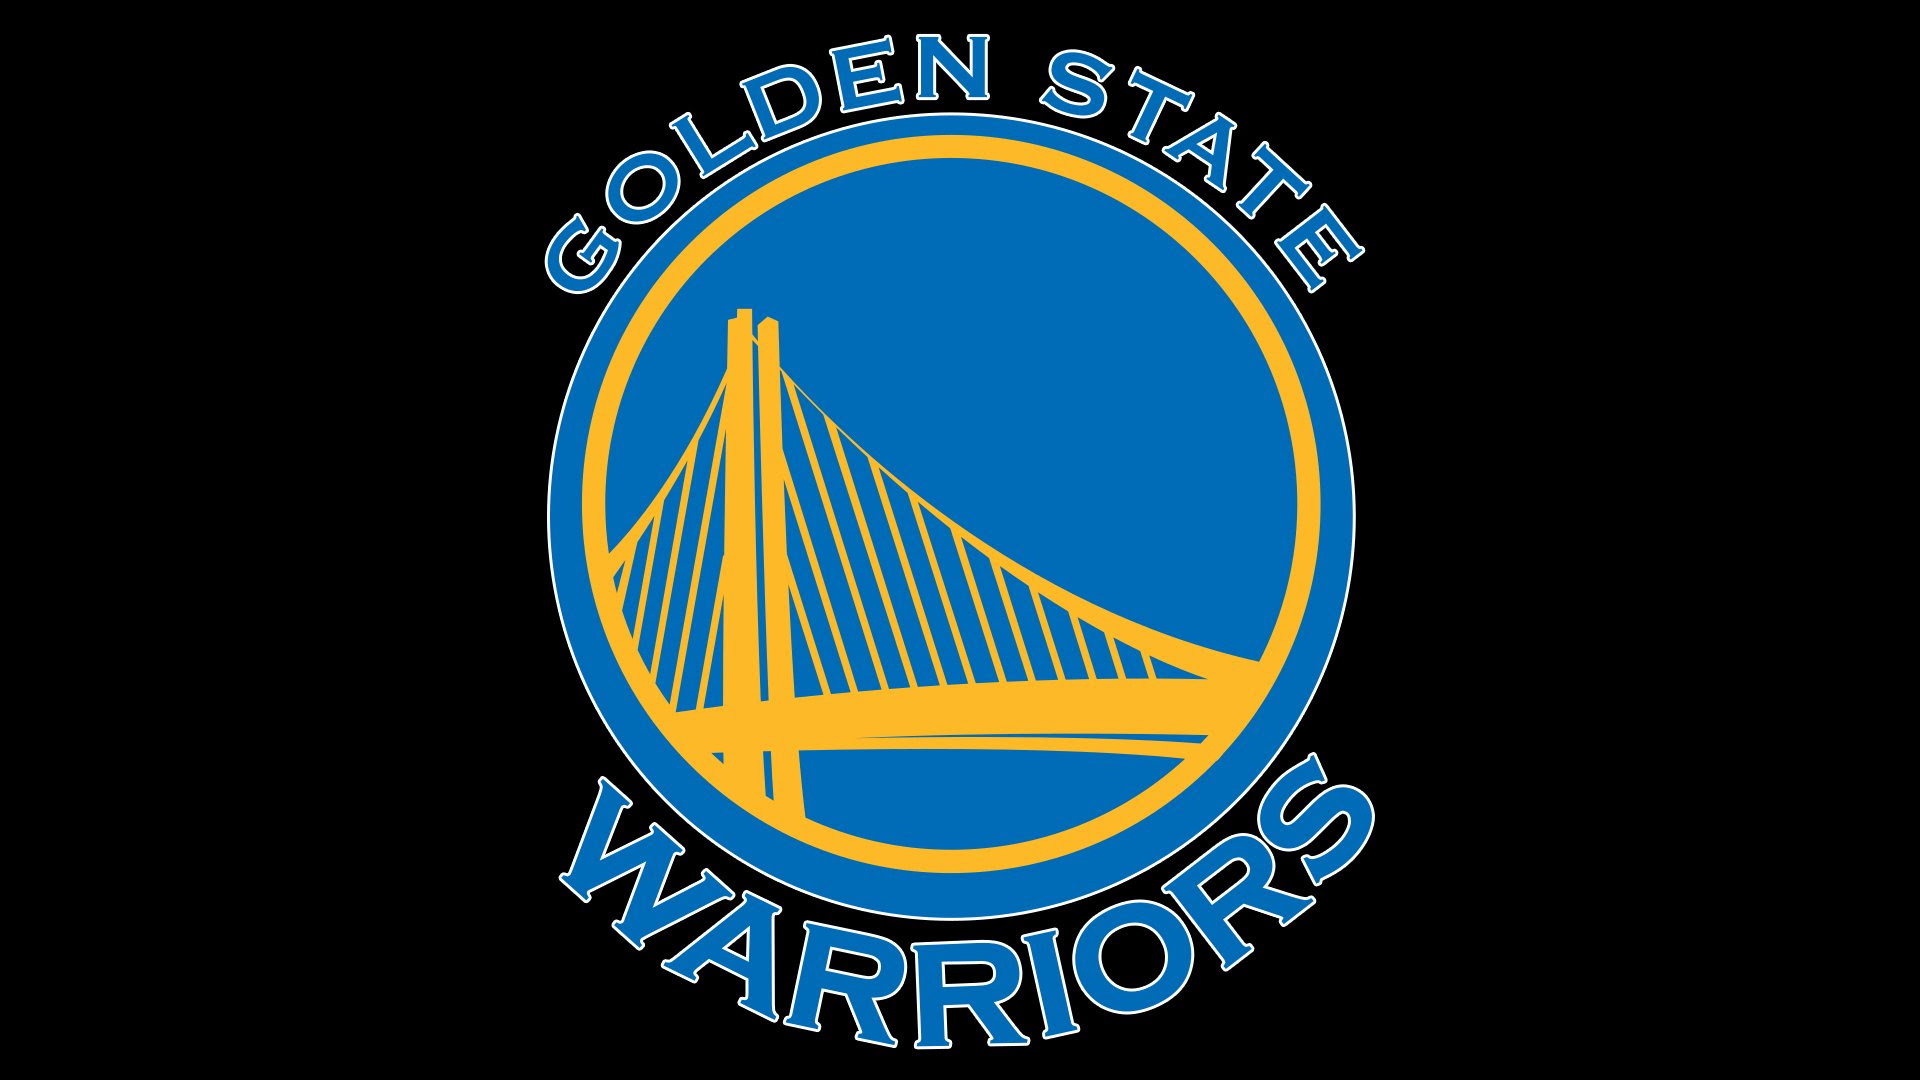 Golden State Warriors Logo, Golden State Warriors Symbol, Meaning, History and Evolution